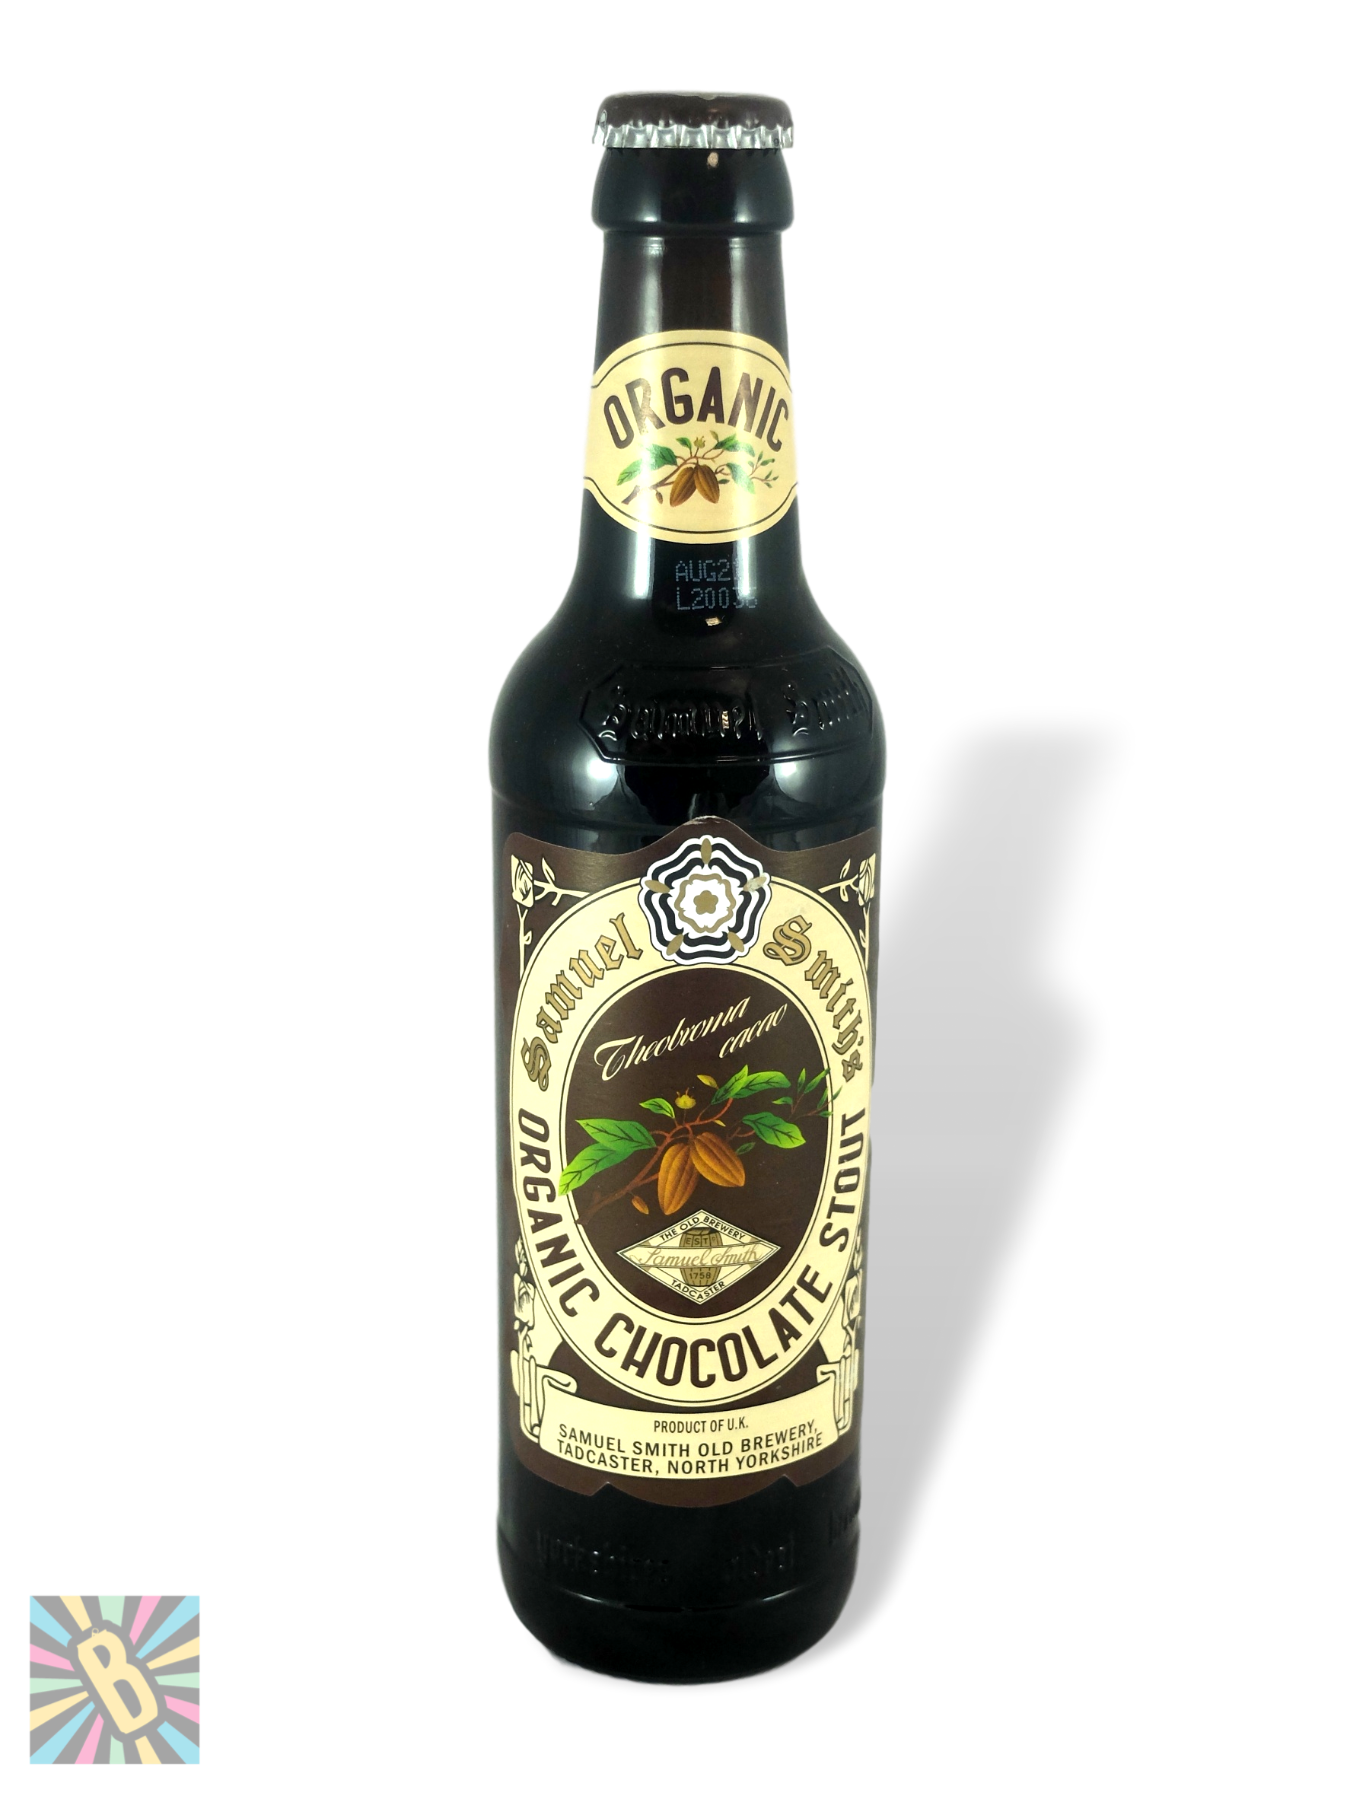 Samuel Smith Organic Choco 35.5cl